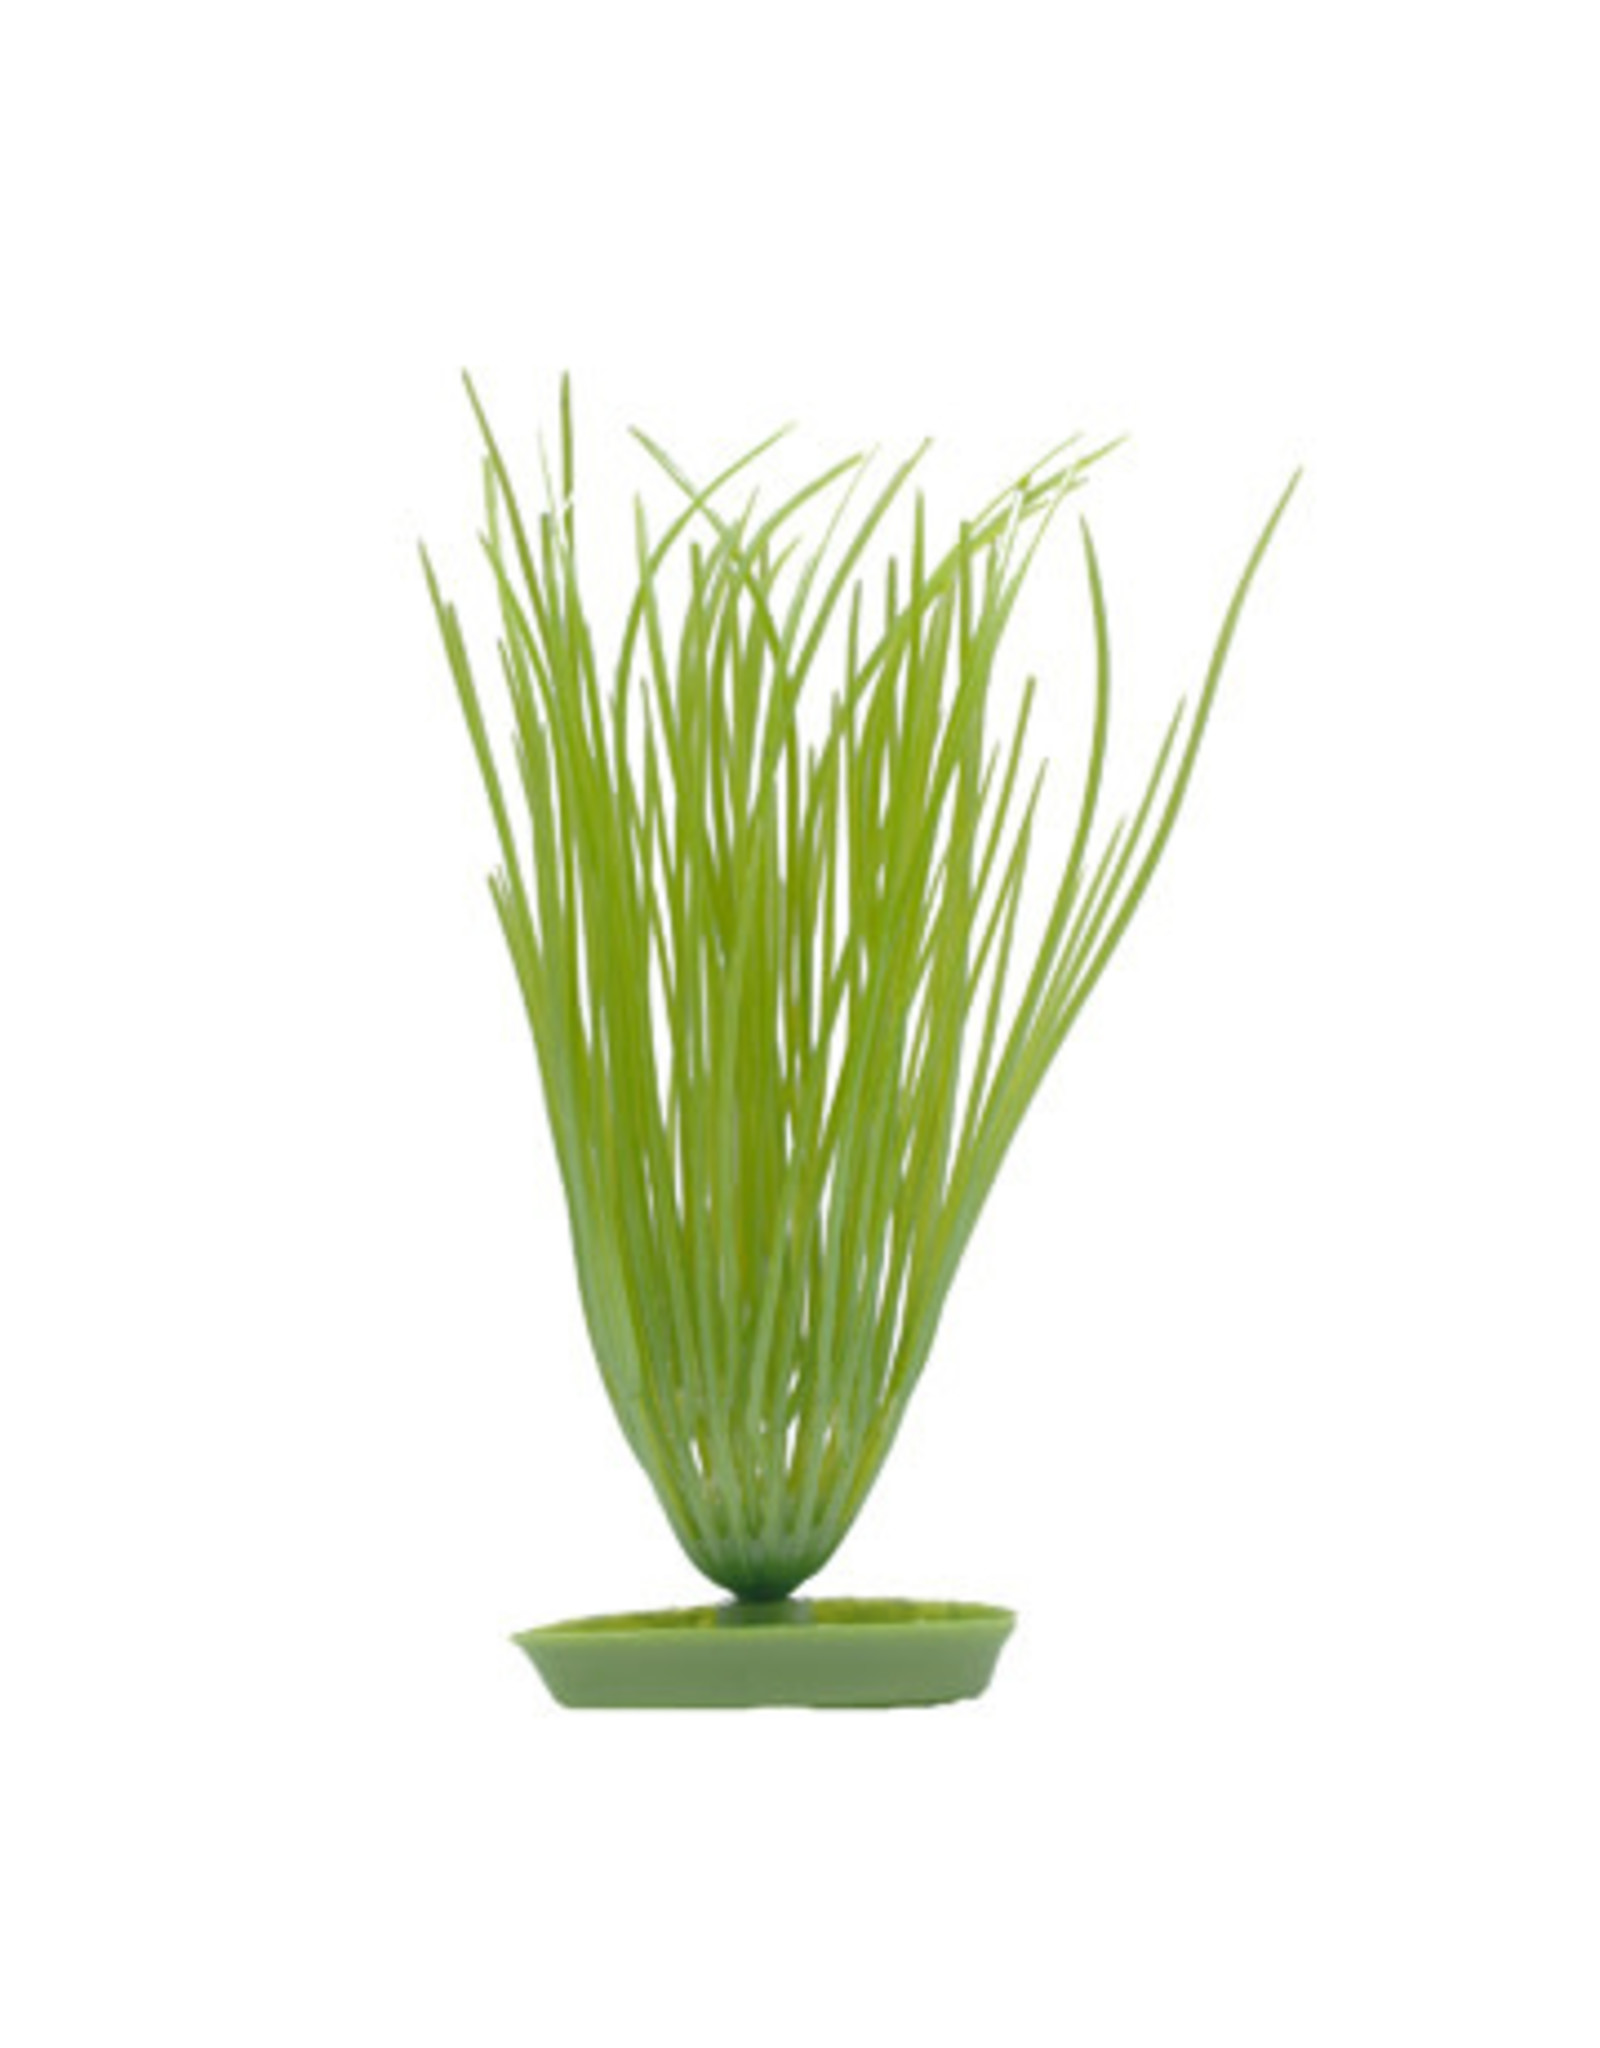 Marina Marina Aquascaper Plastic Plant - Hairgrass - 20 cm (8 in)